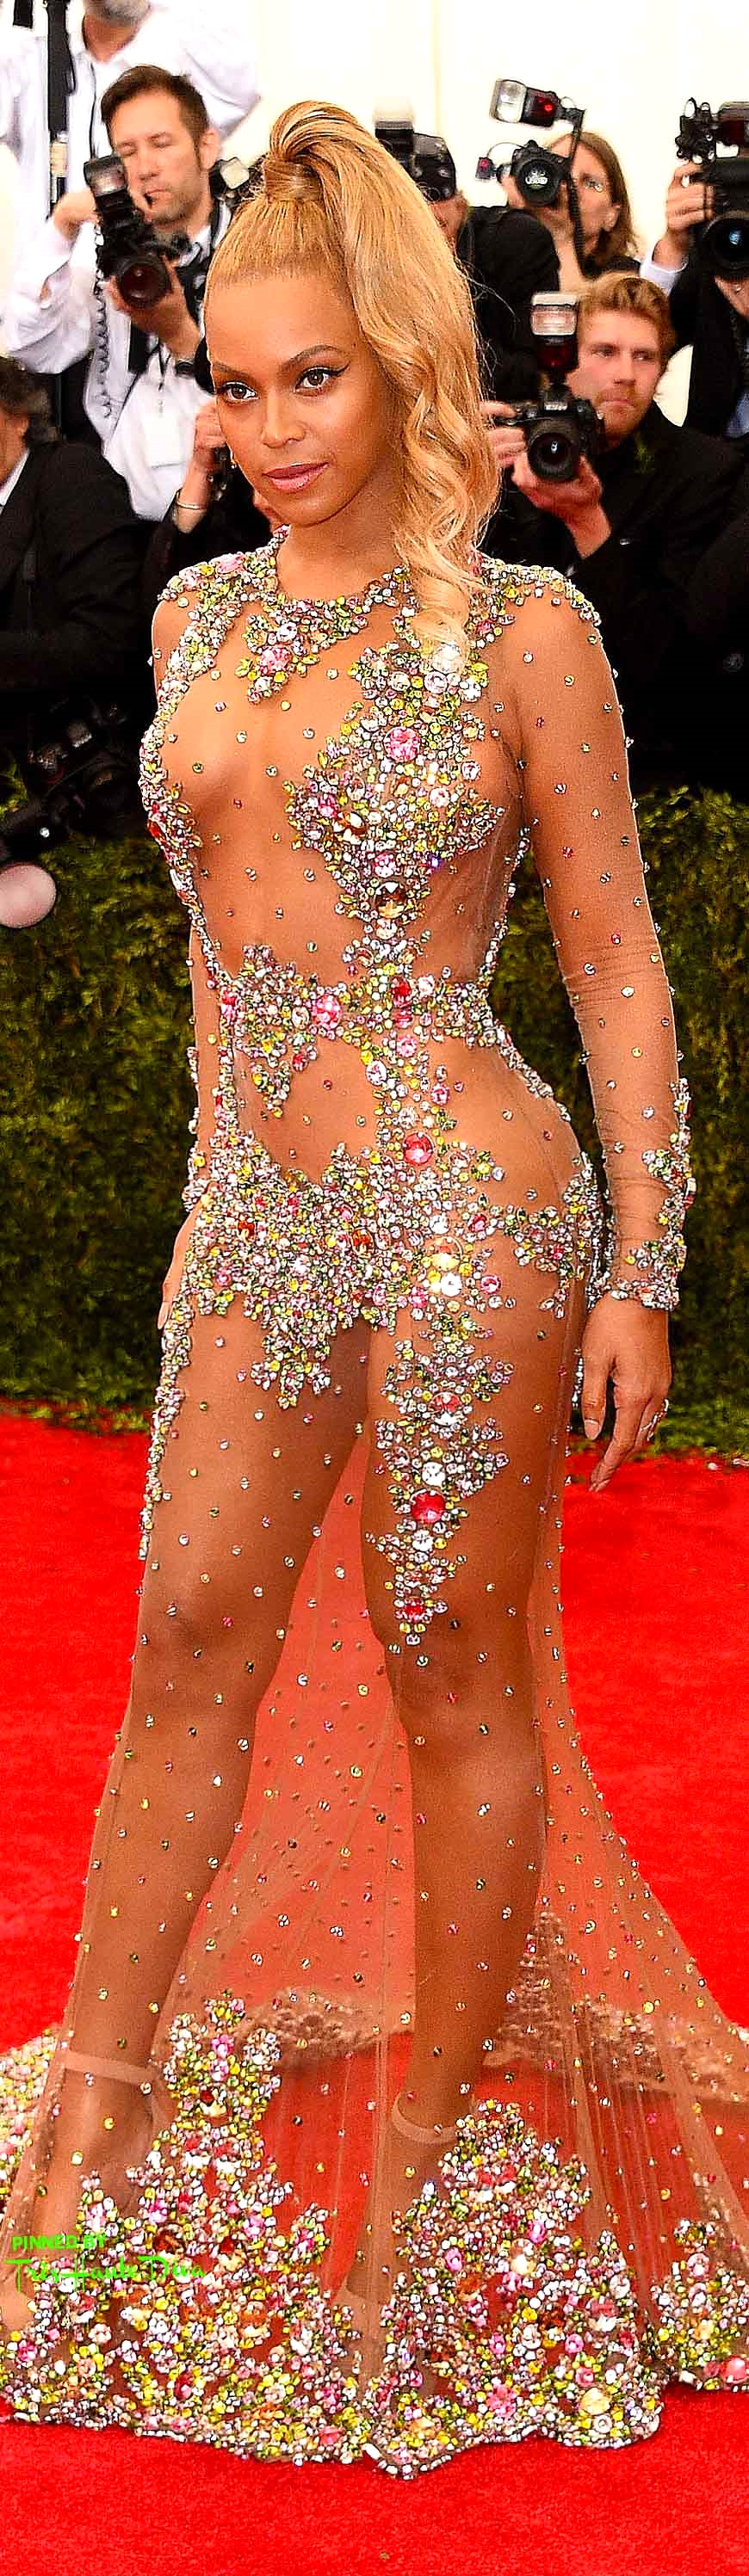 Beyoncé in Givenchy Getty Images/ Larry Busacca